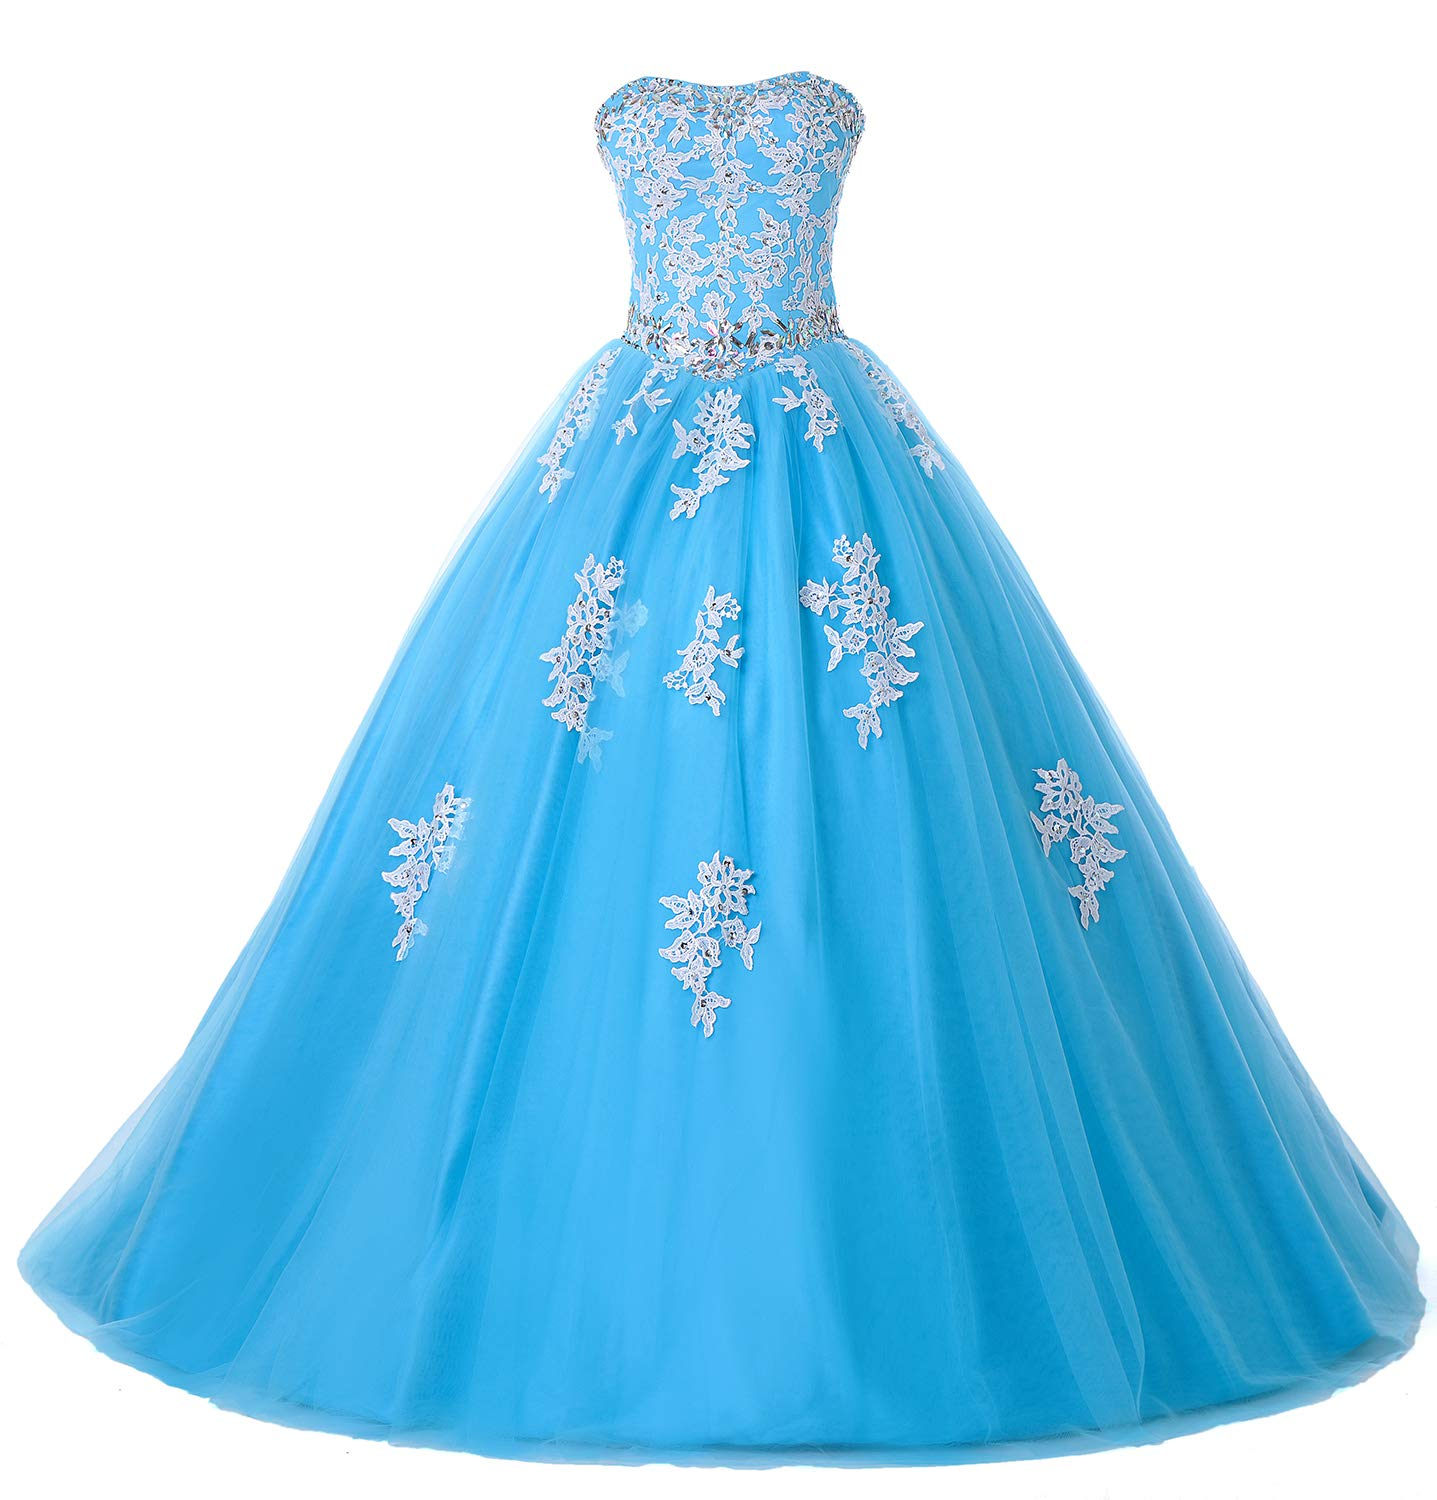 Available at Amazon: Eldecey Women's Lace Applique Floor Length Tulle Ball Gown Quinceanera Dress